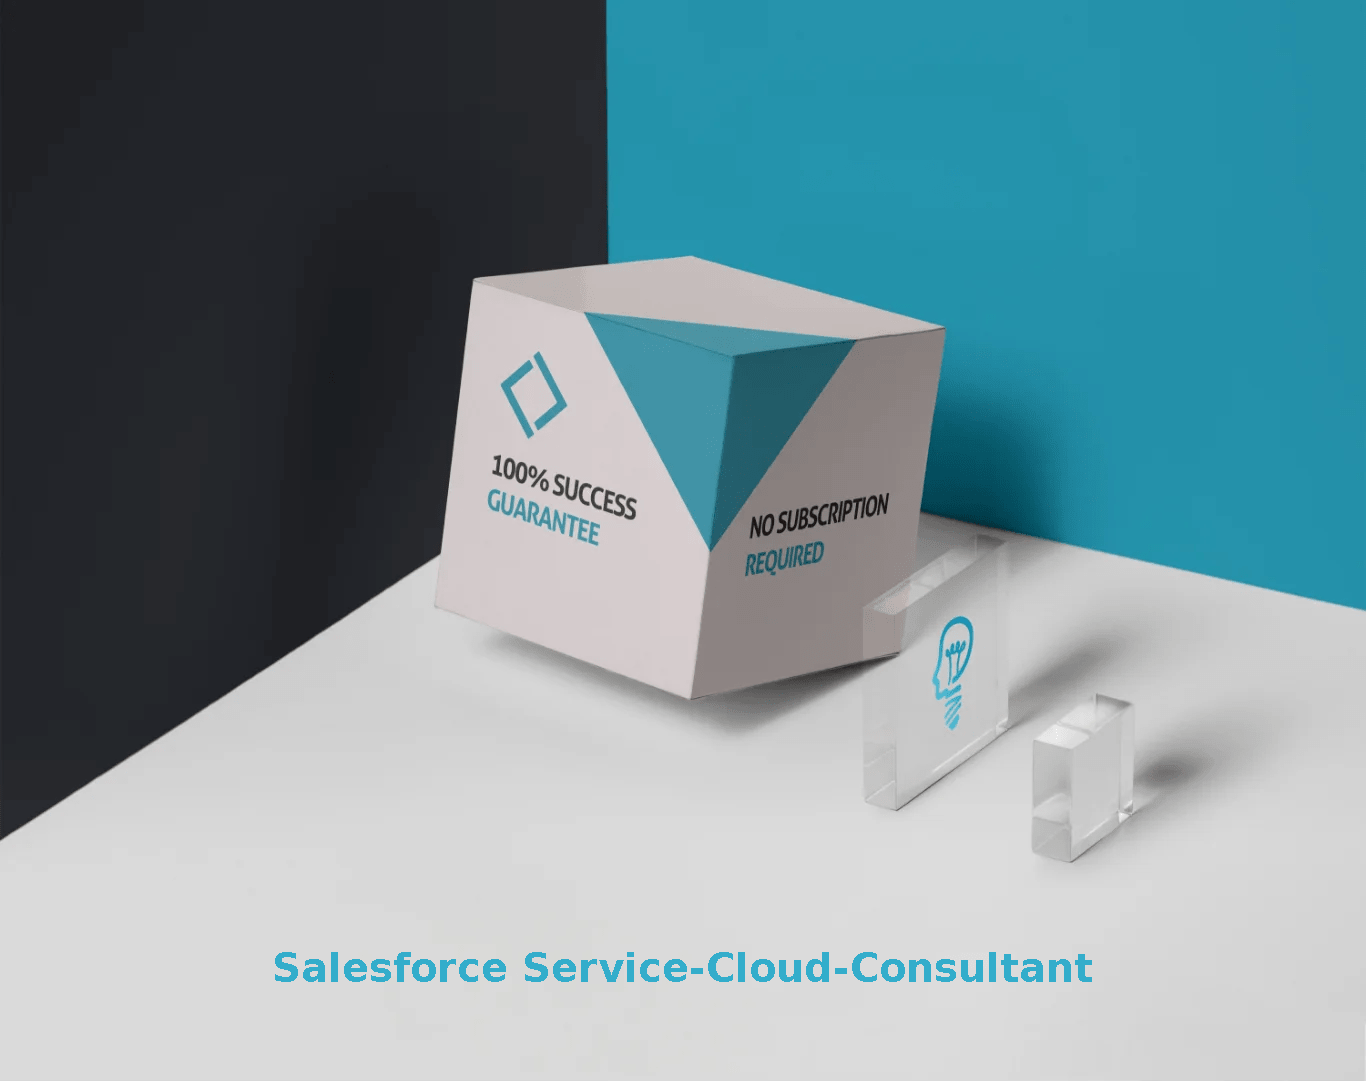 Salesforce Service-Cloud-Consultant Exams